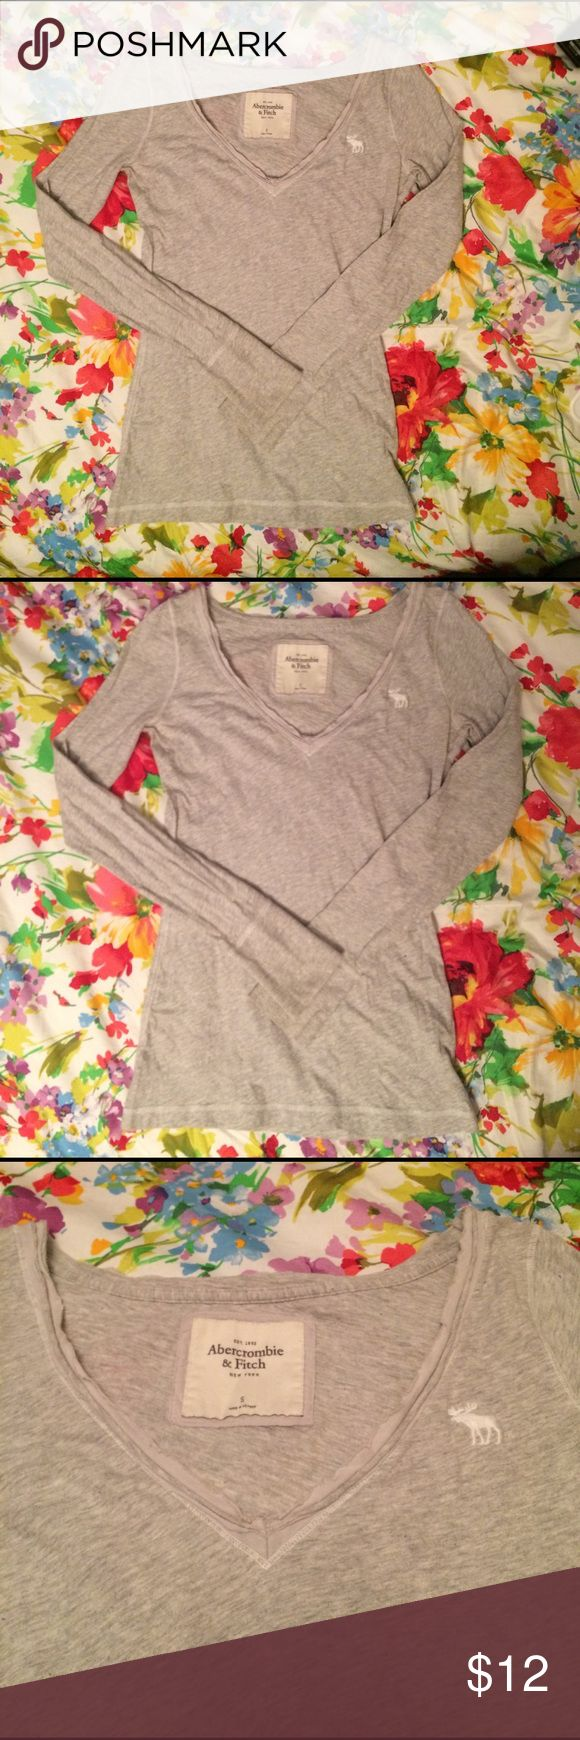 Abercrombie & Fitch long sleeved shirt Great condition! Light gray long sleeve top. V neck. Soft and cozy! Abercrombie & Fitch Tops Tees - Short Sleeve